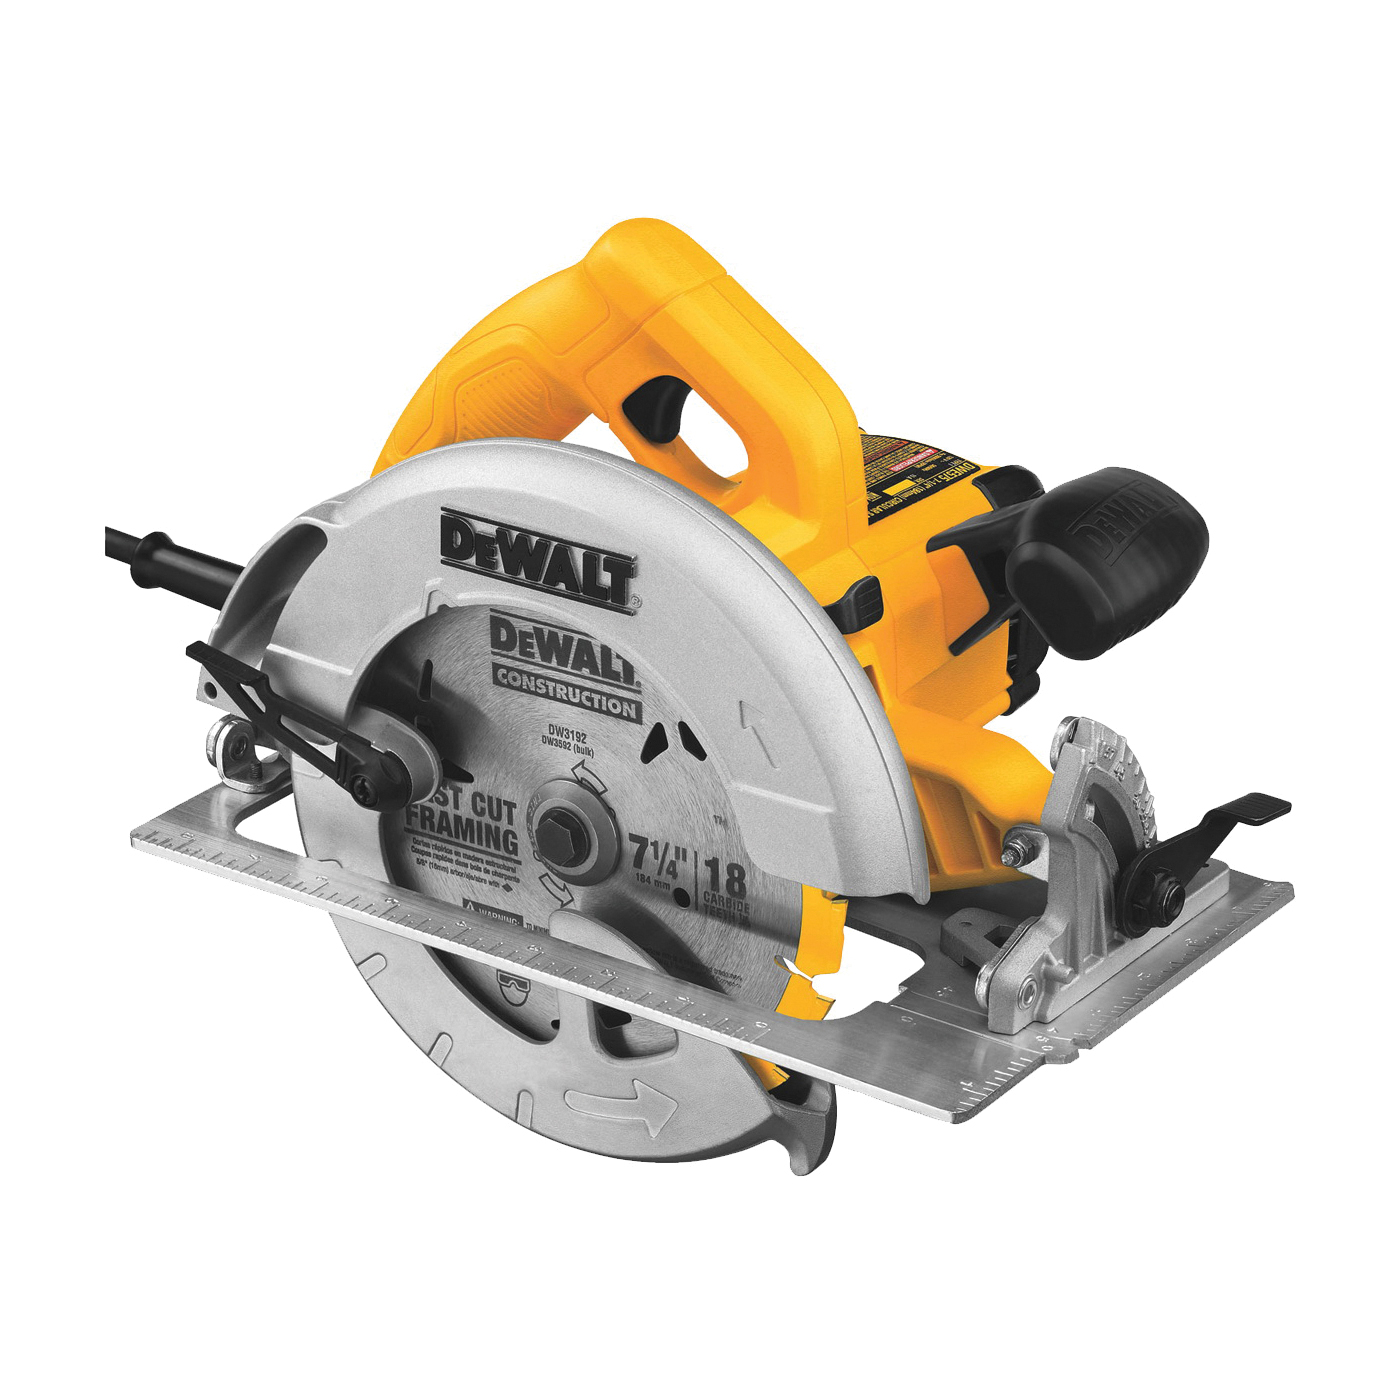 Picture of DeWALT DWE575 Circular Saw, 120 V, 15 A, 1950 W, 7-1/4 in Dia Blade, 5/8 in Arbor, 57 deg Bevel